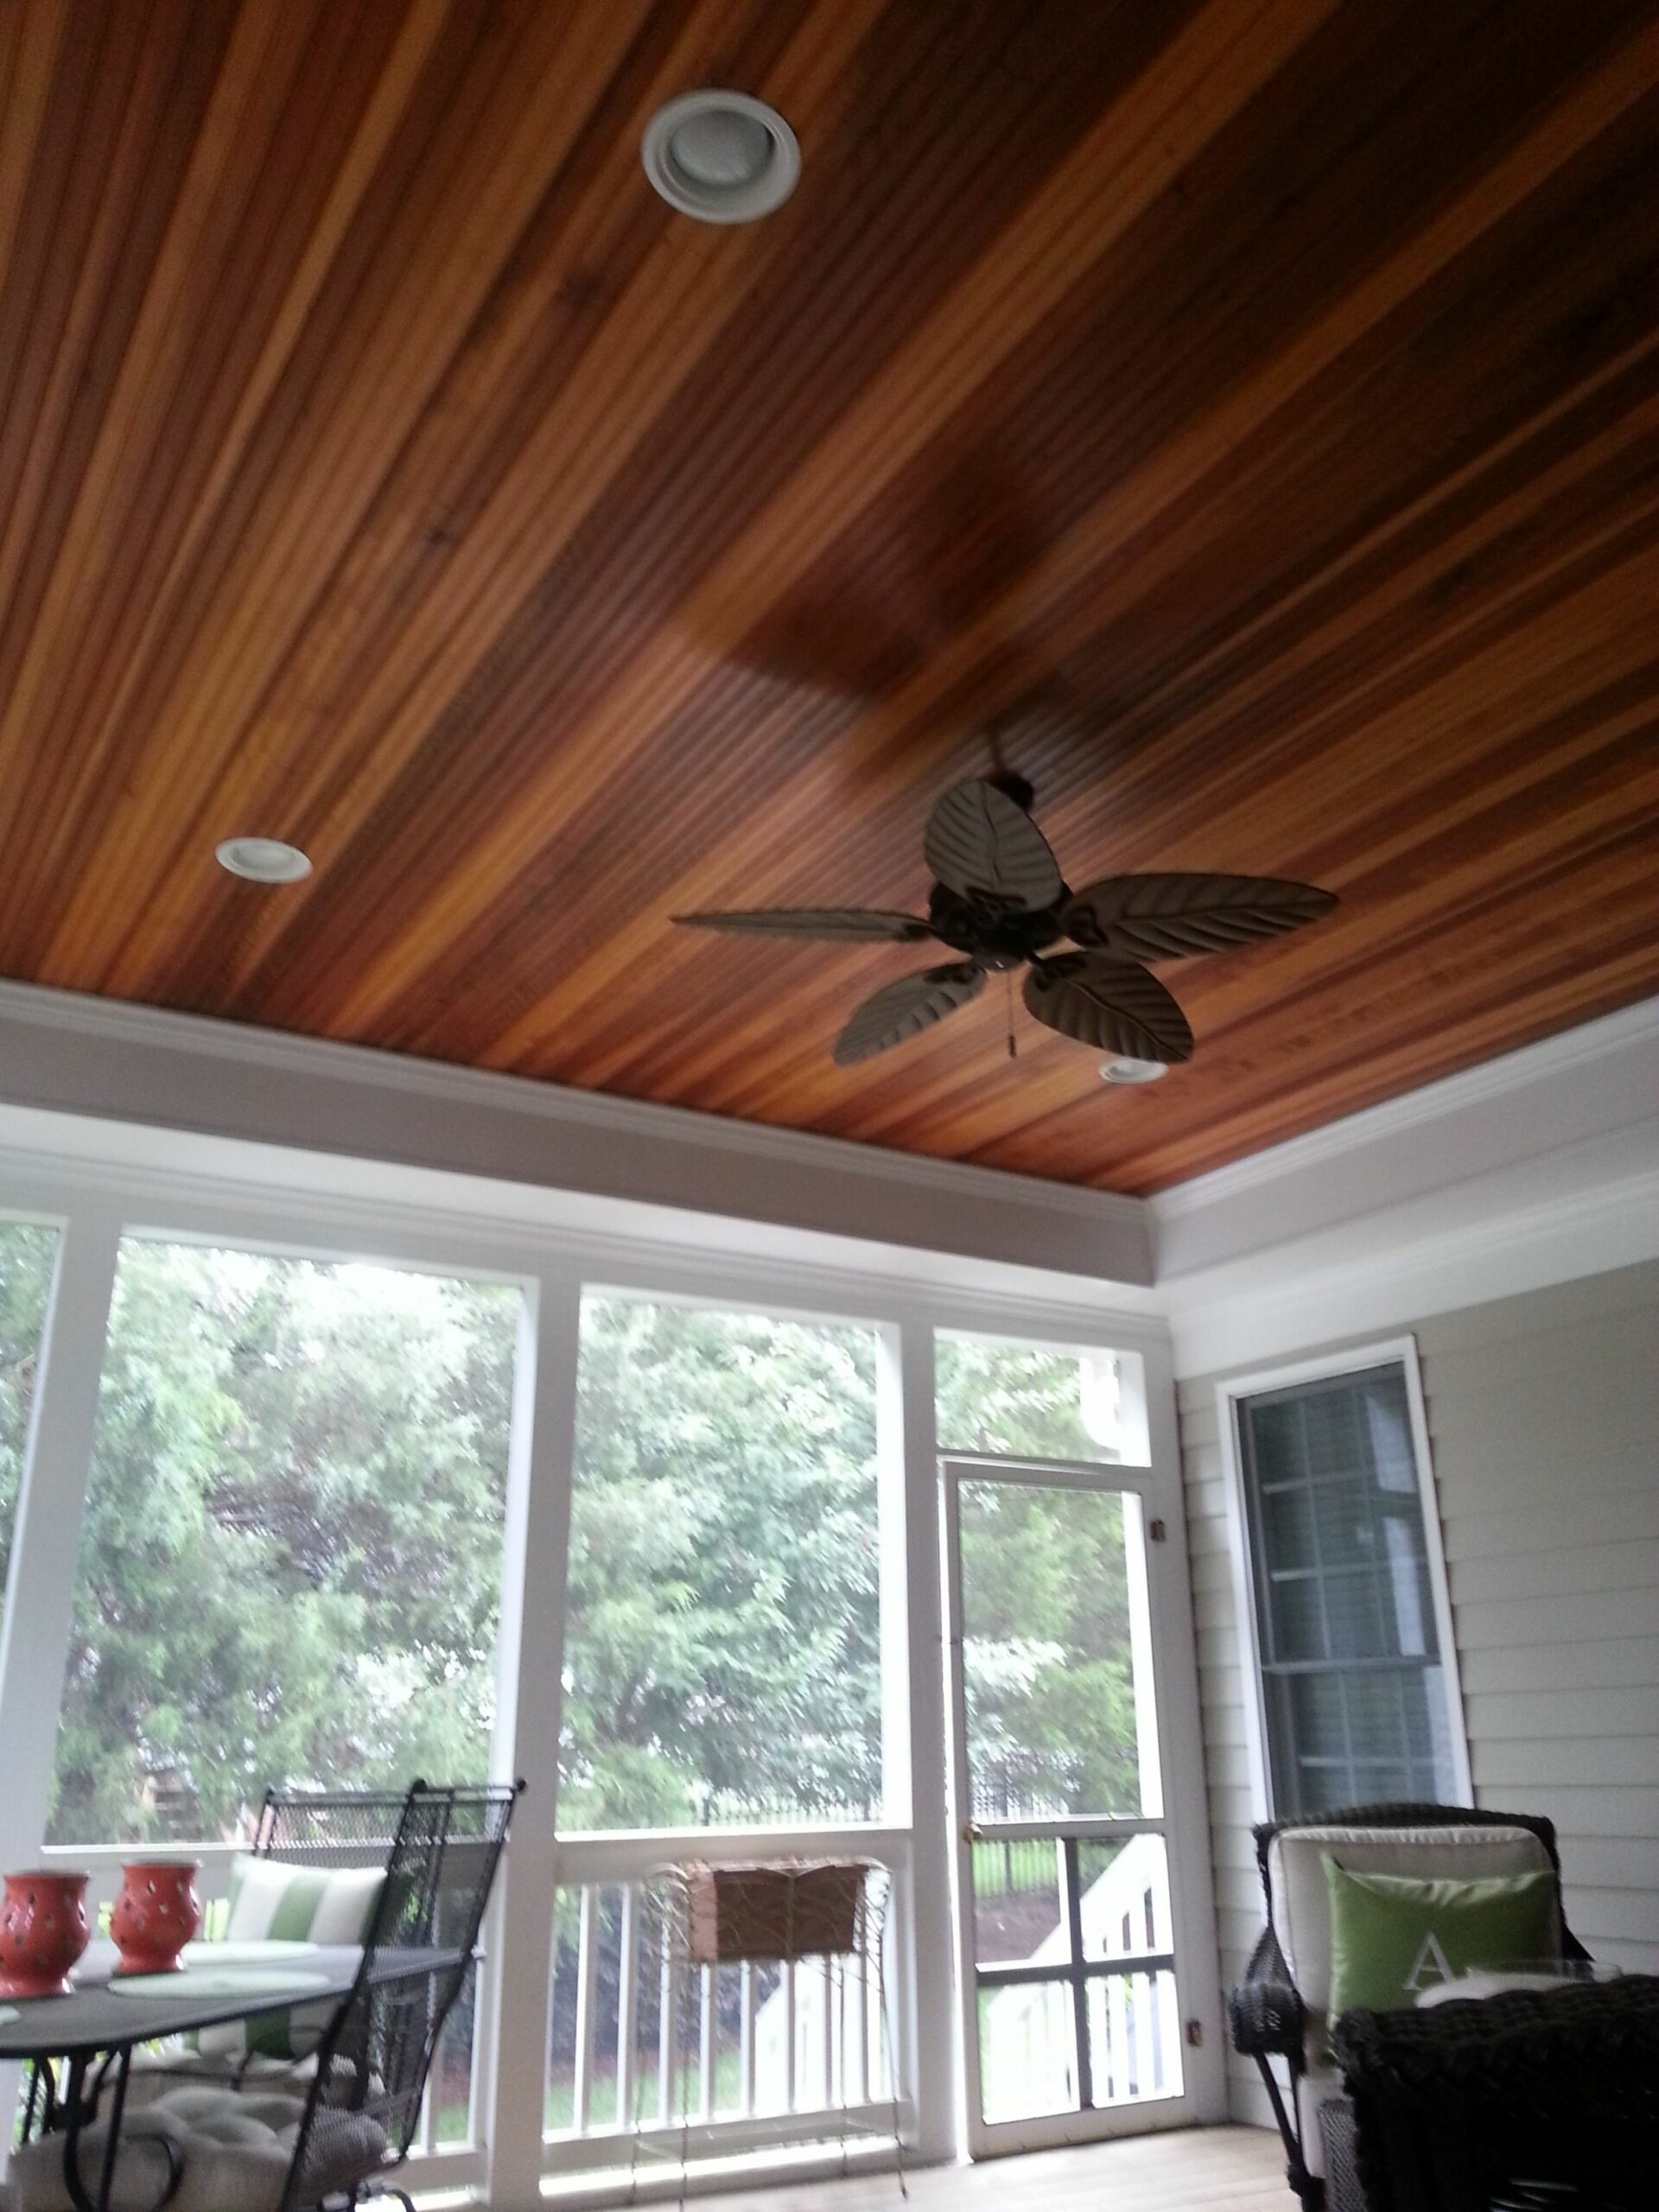 Redwood Beadboard | Vinyl beadboard, Patio ceiling ideas, Porch ..